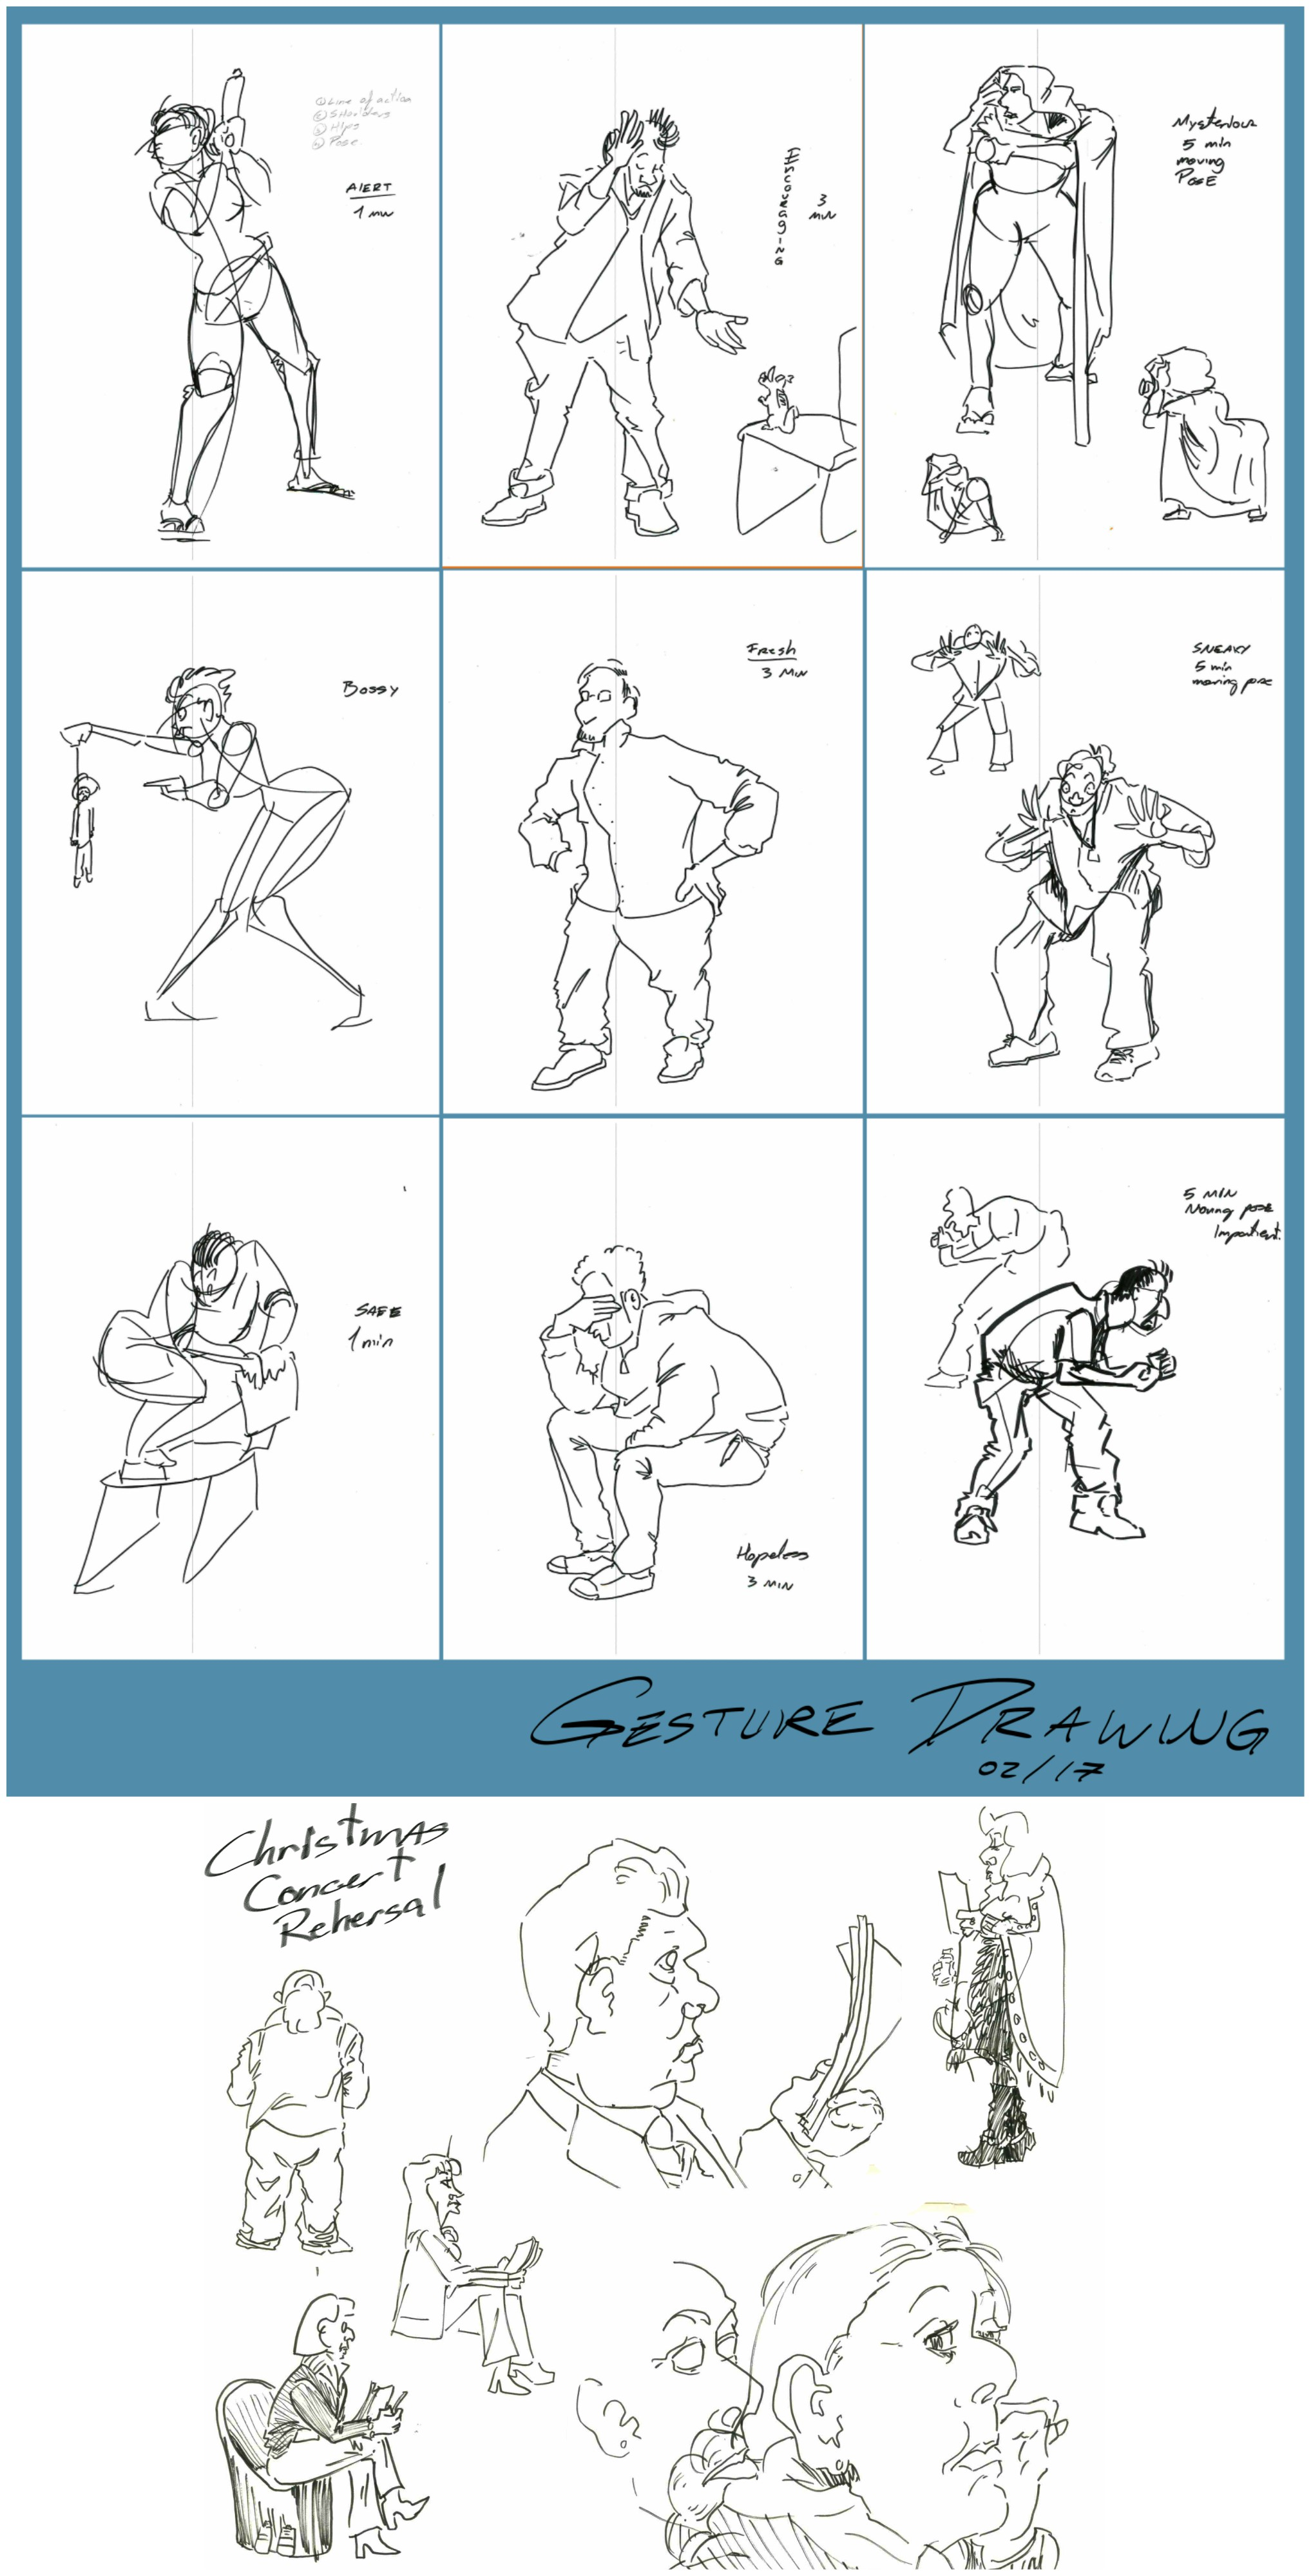 Gesture Drawing Classes